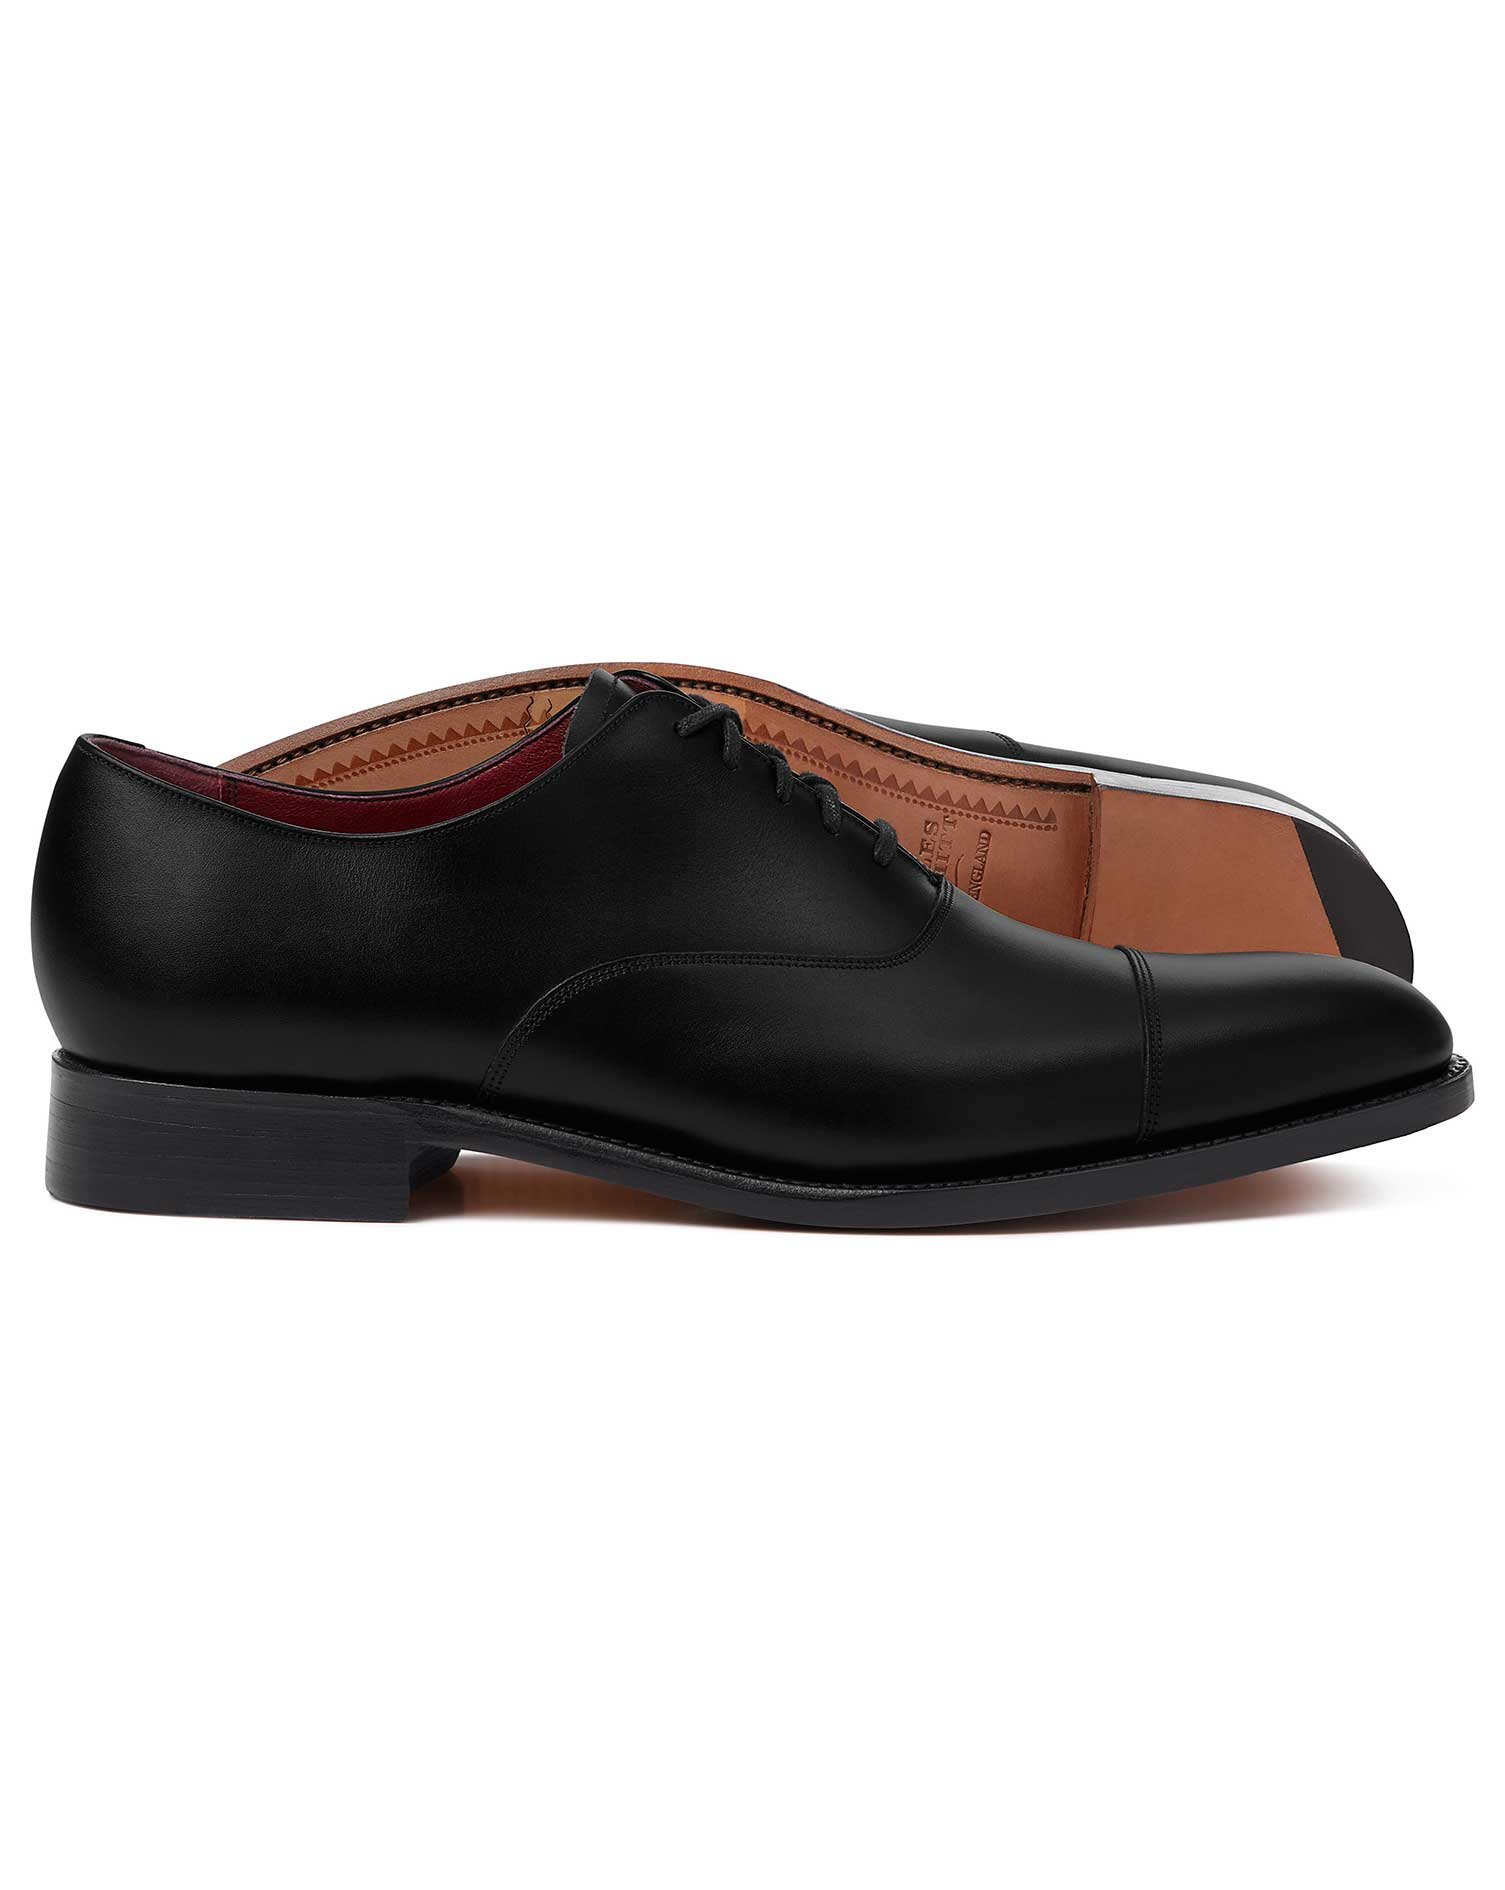 Black Made In England Oxford Flex Sole Shoes Size 7.5 W by Charles Tyrwhitt